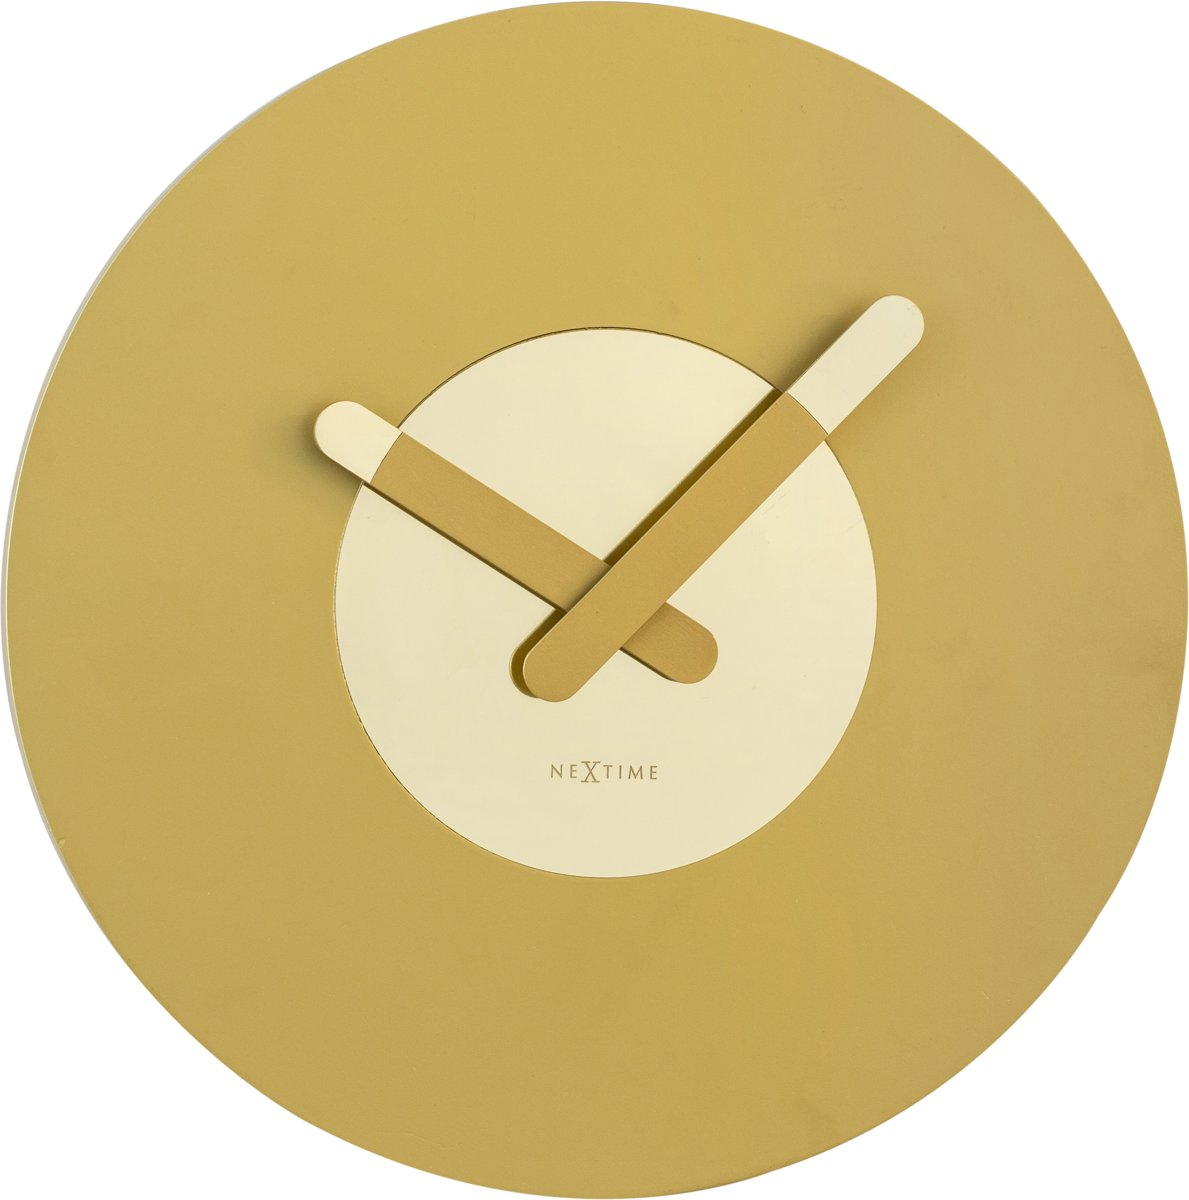 Wandklok NeXtime dia. 39.5 cm, hout, goud, 'In touch'